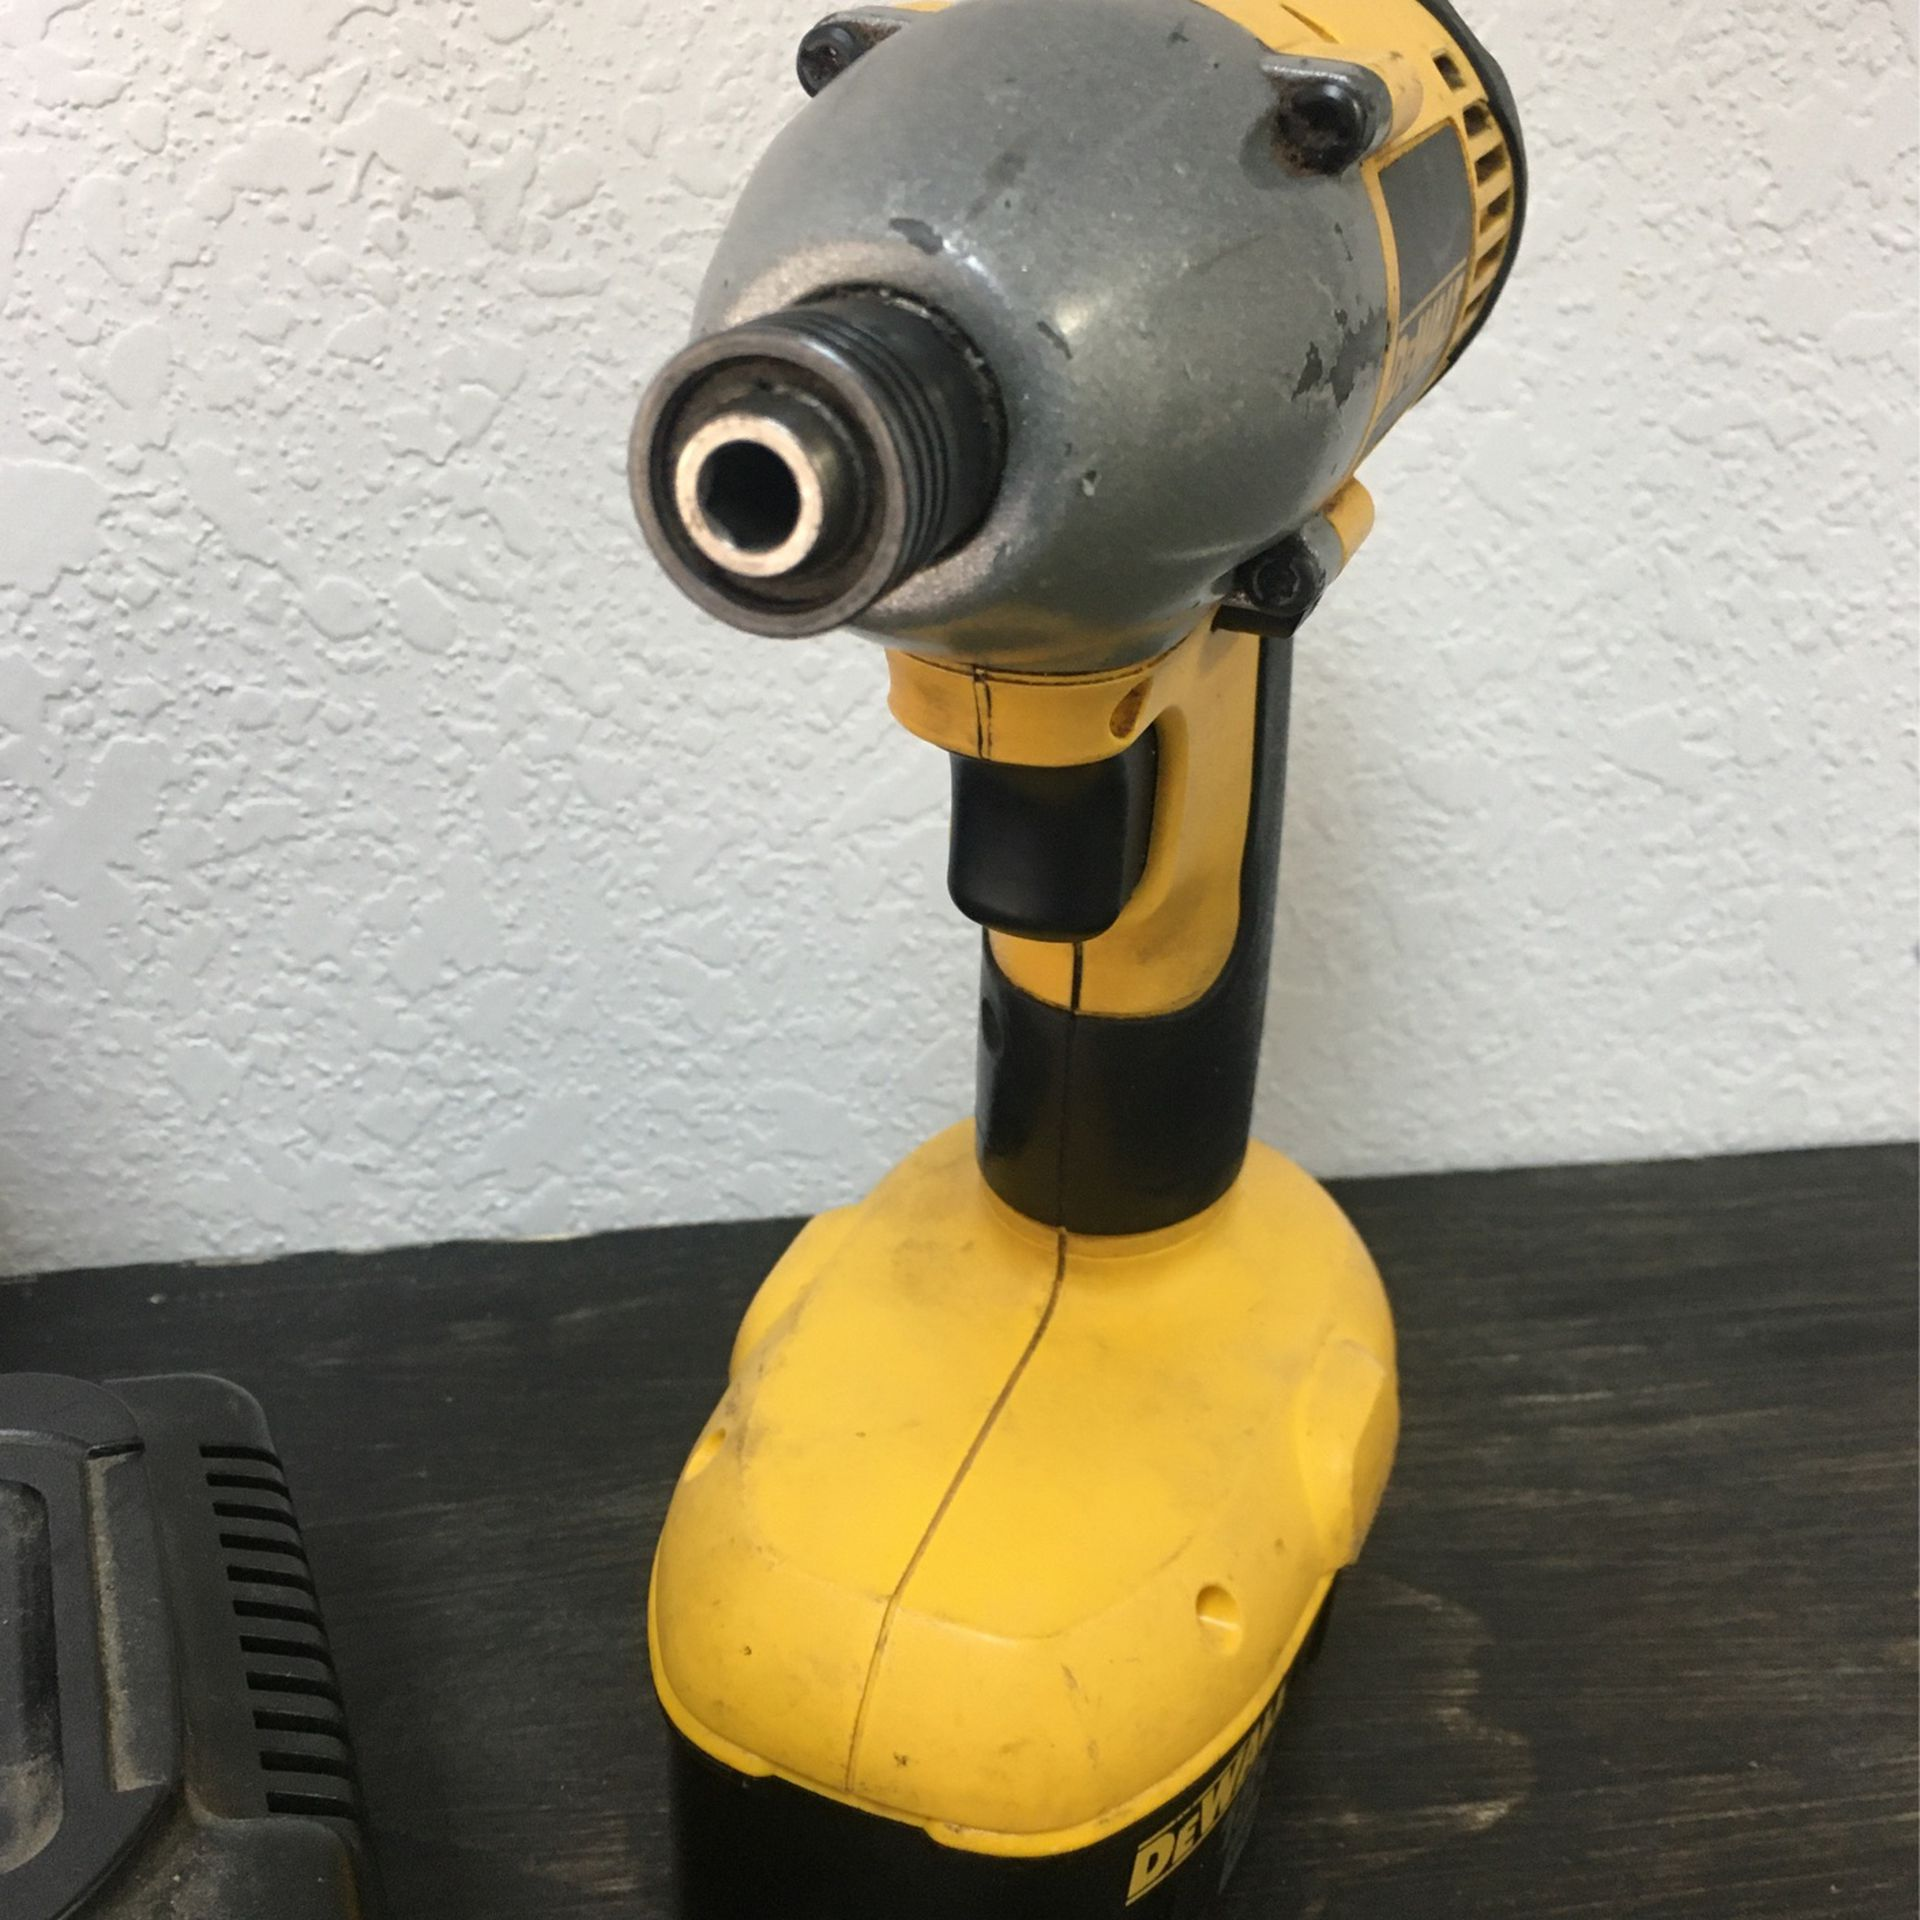 DEWALT Impact Wrench And Driver 18v Cordless With Charger Industrial Tool Set With Bag BCP008847